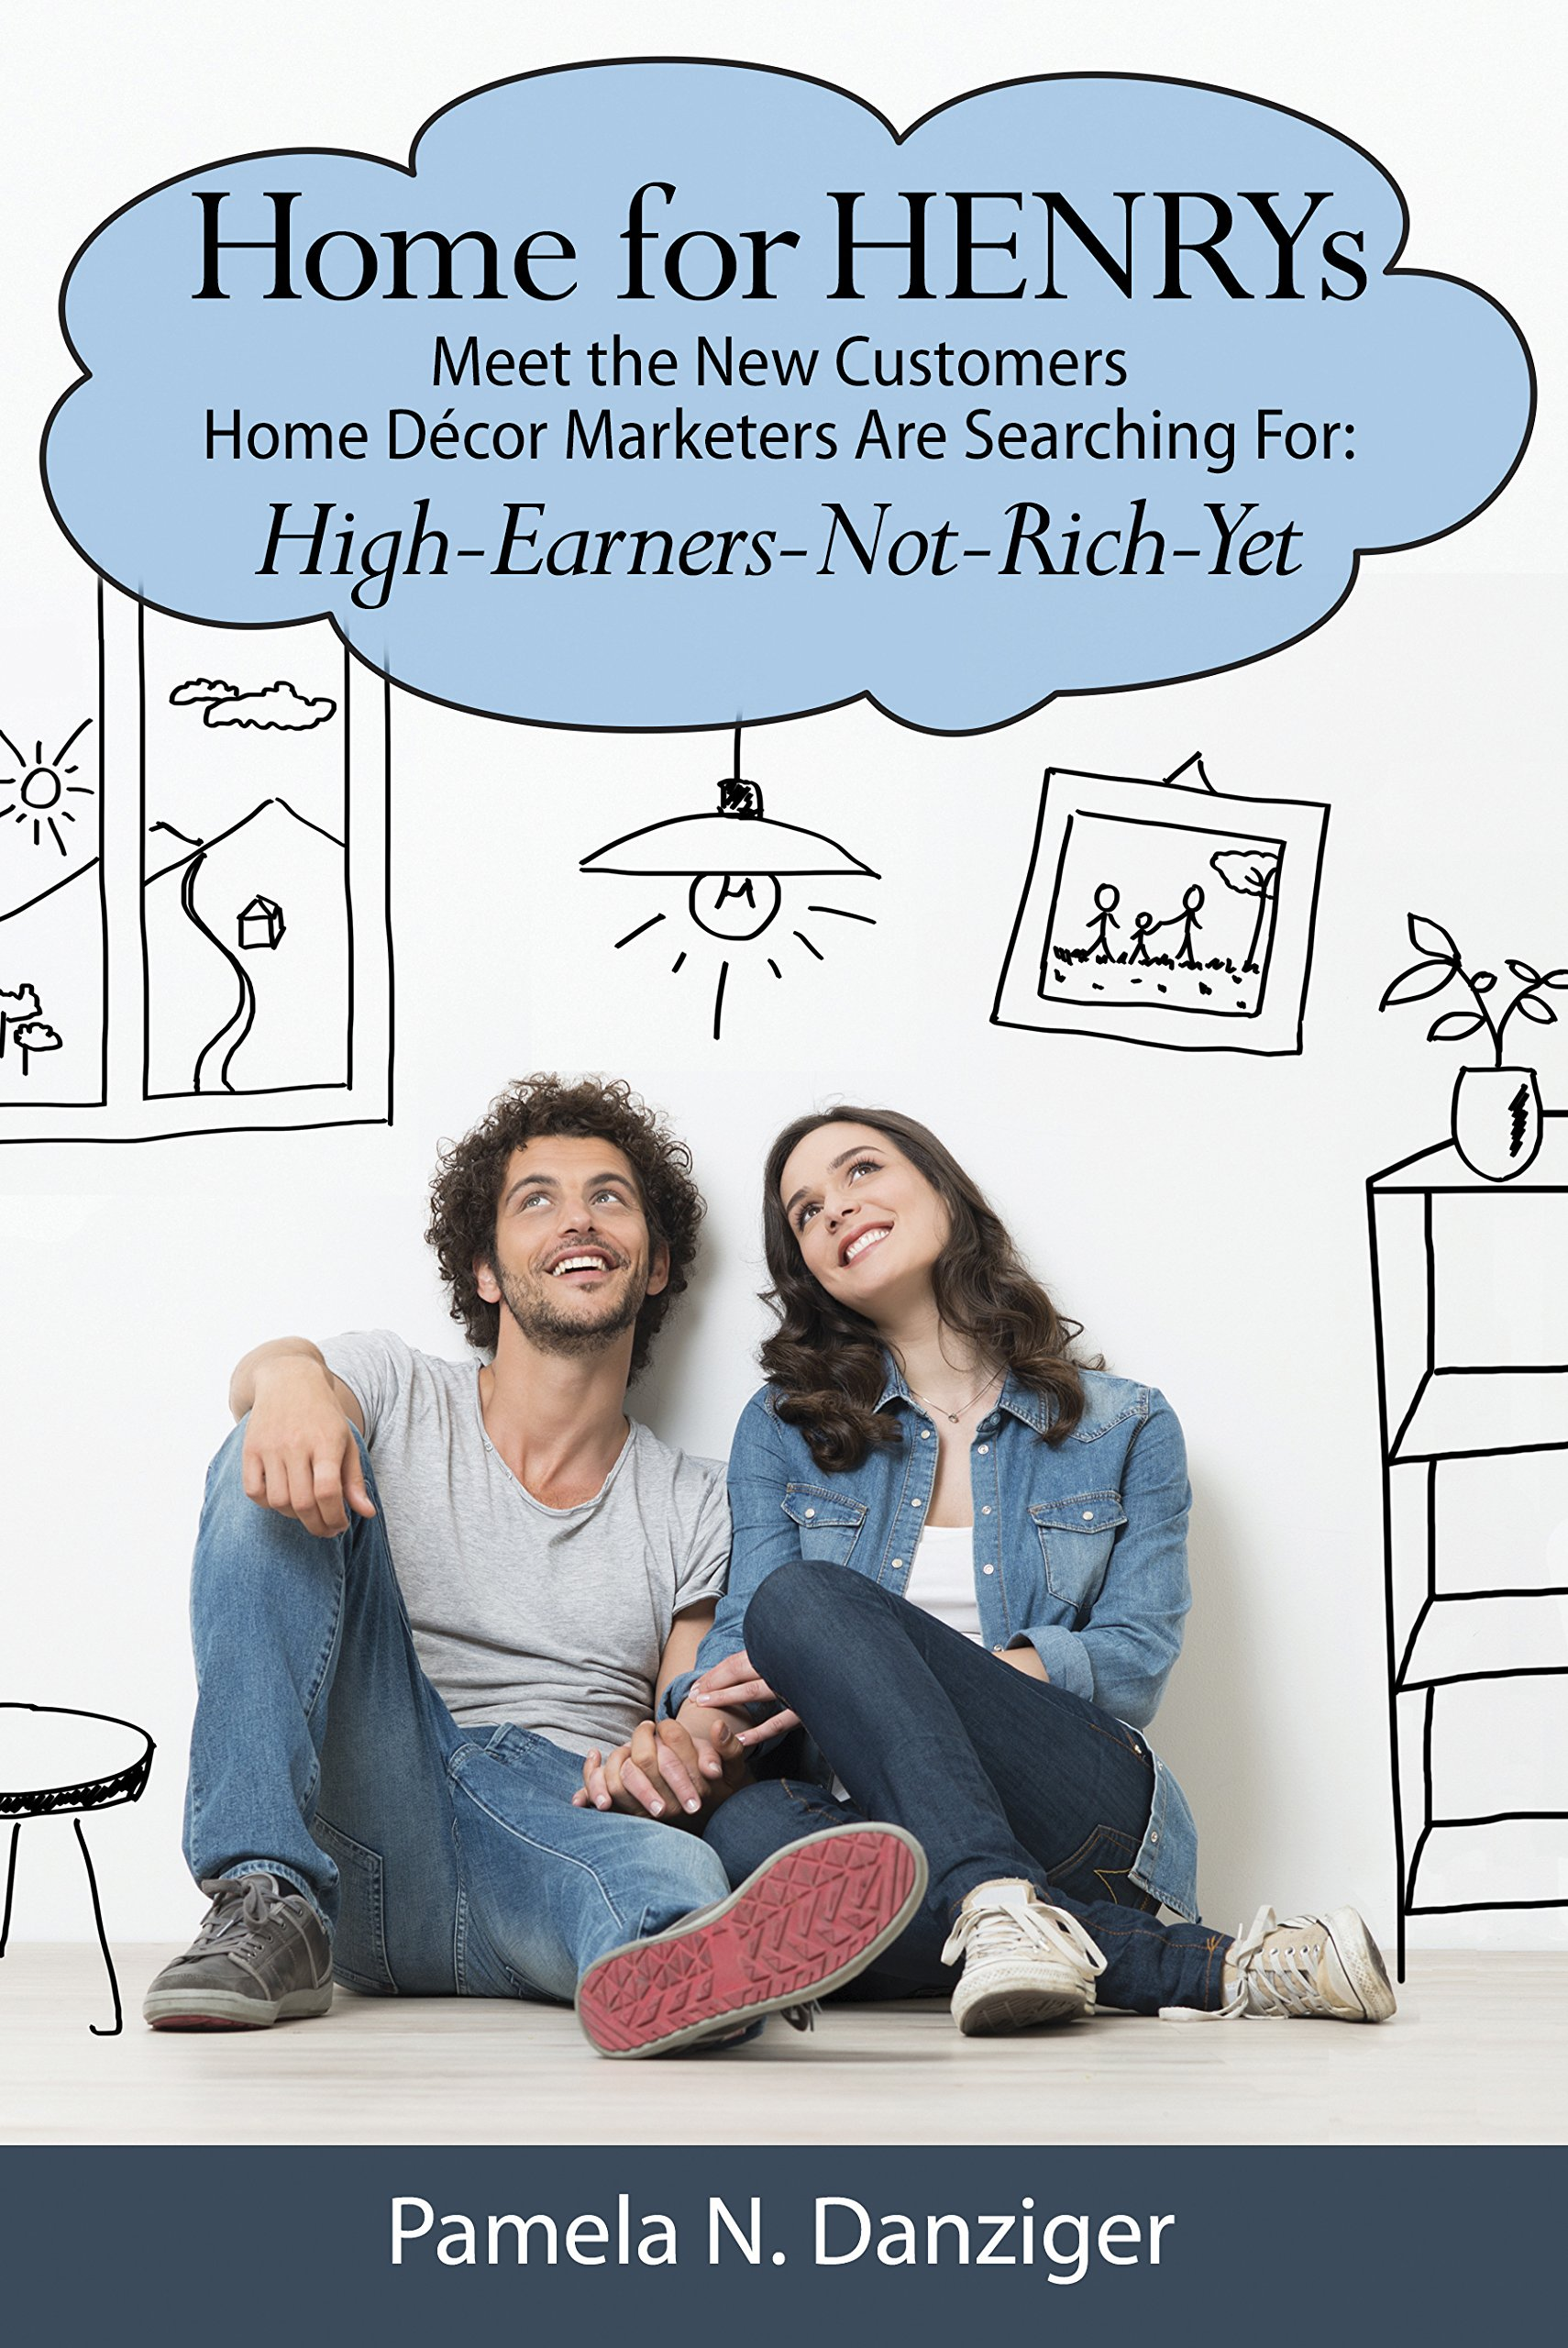 Download Home for HENRYs:Meet the New Customers Home Décor Marketers are Searching For: High-Earners-Not-Rich-Yet pdf